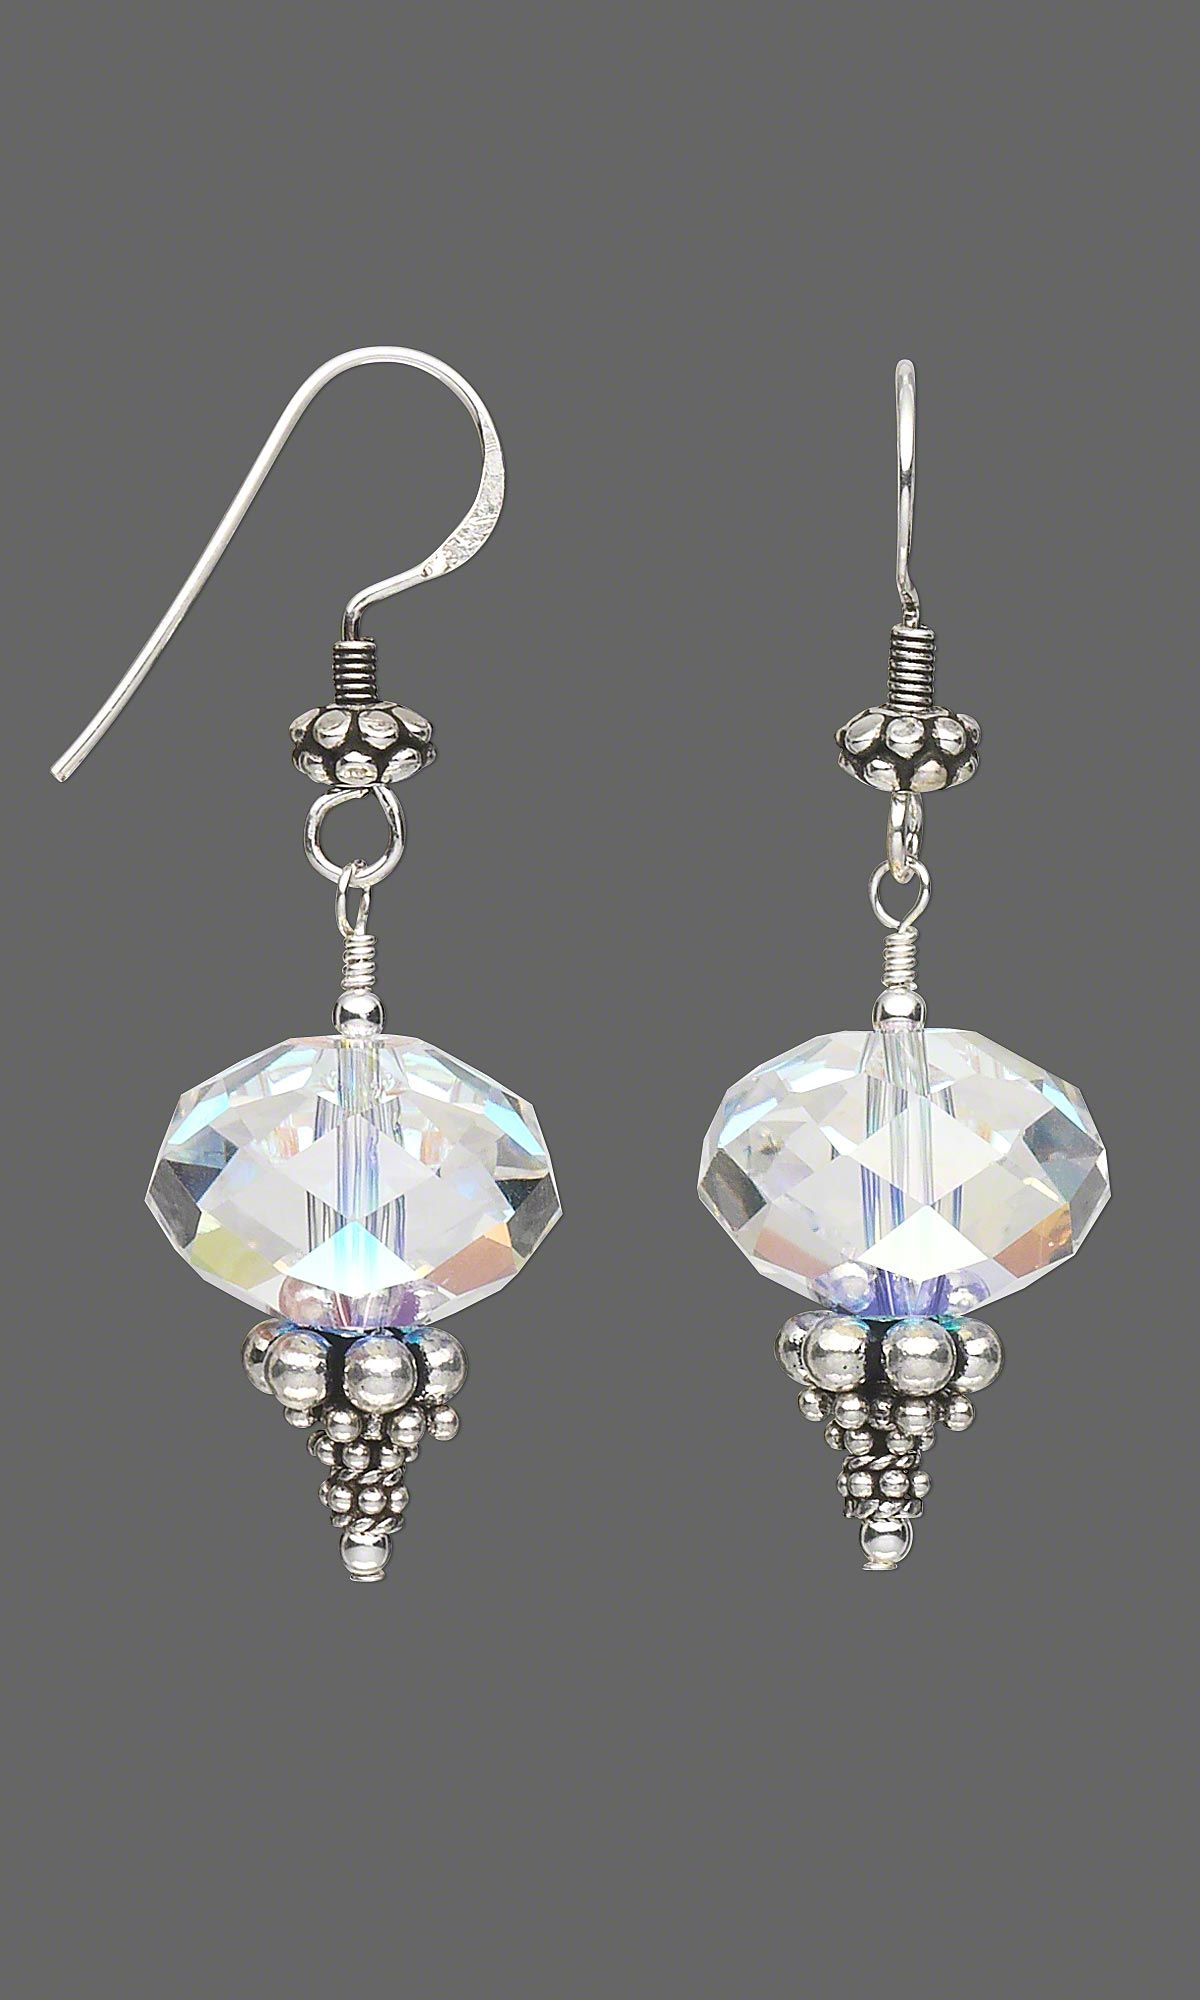 Jewelry Design - Earrings with Swarovski Crystal Beads and ...